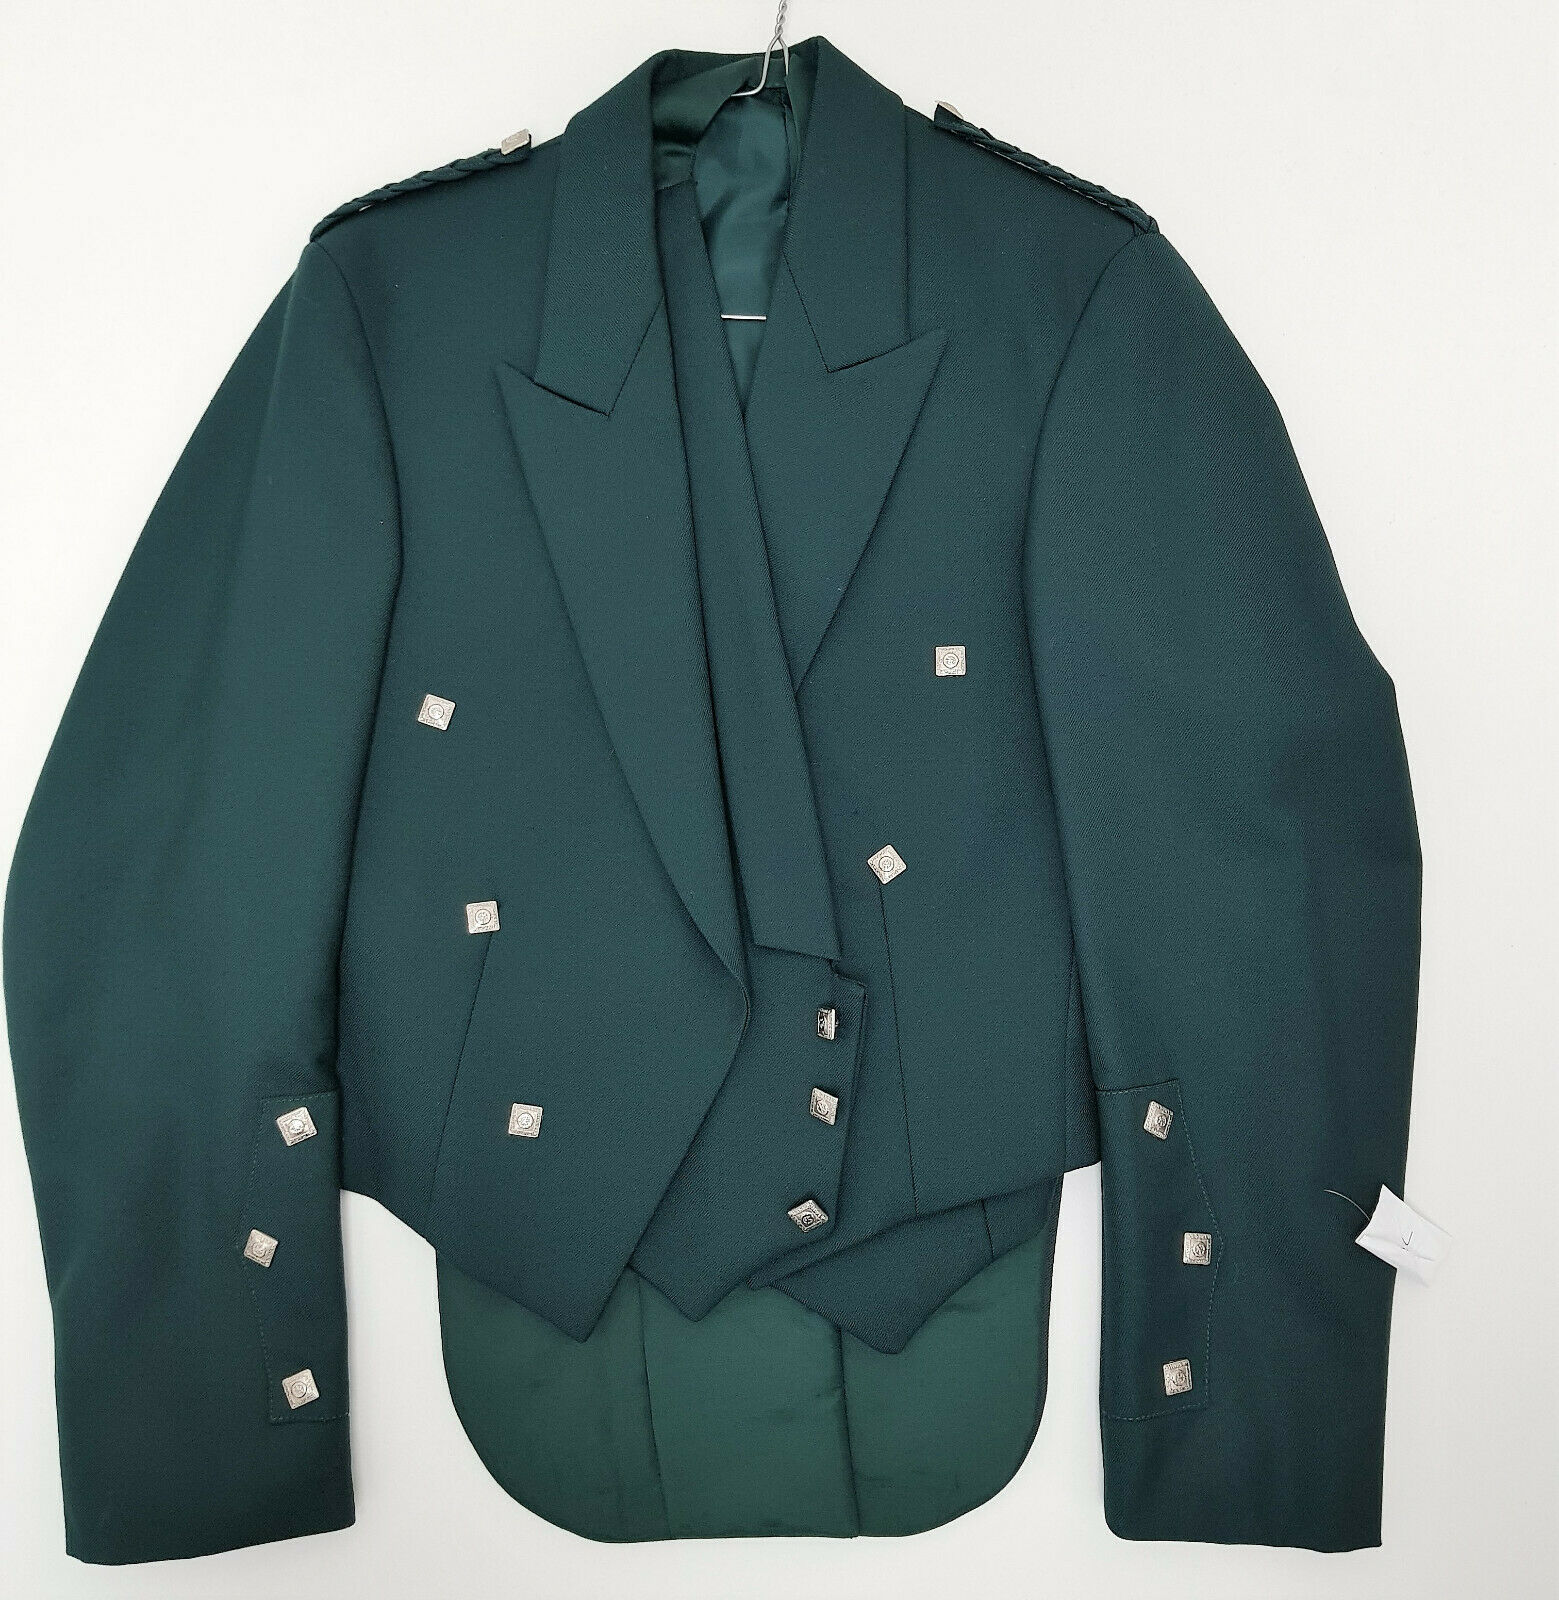 Ex Hire Green Prince Charlie Jacket & Vest Scottish Made reduced to to clear